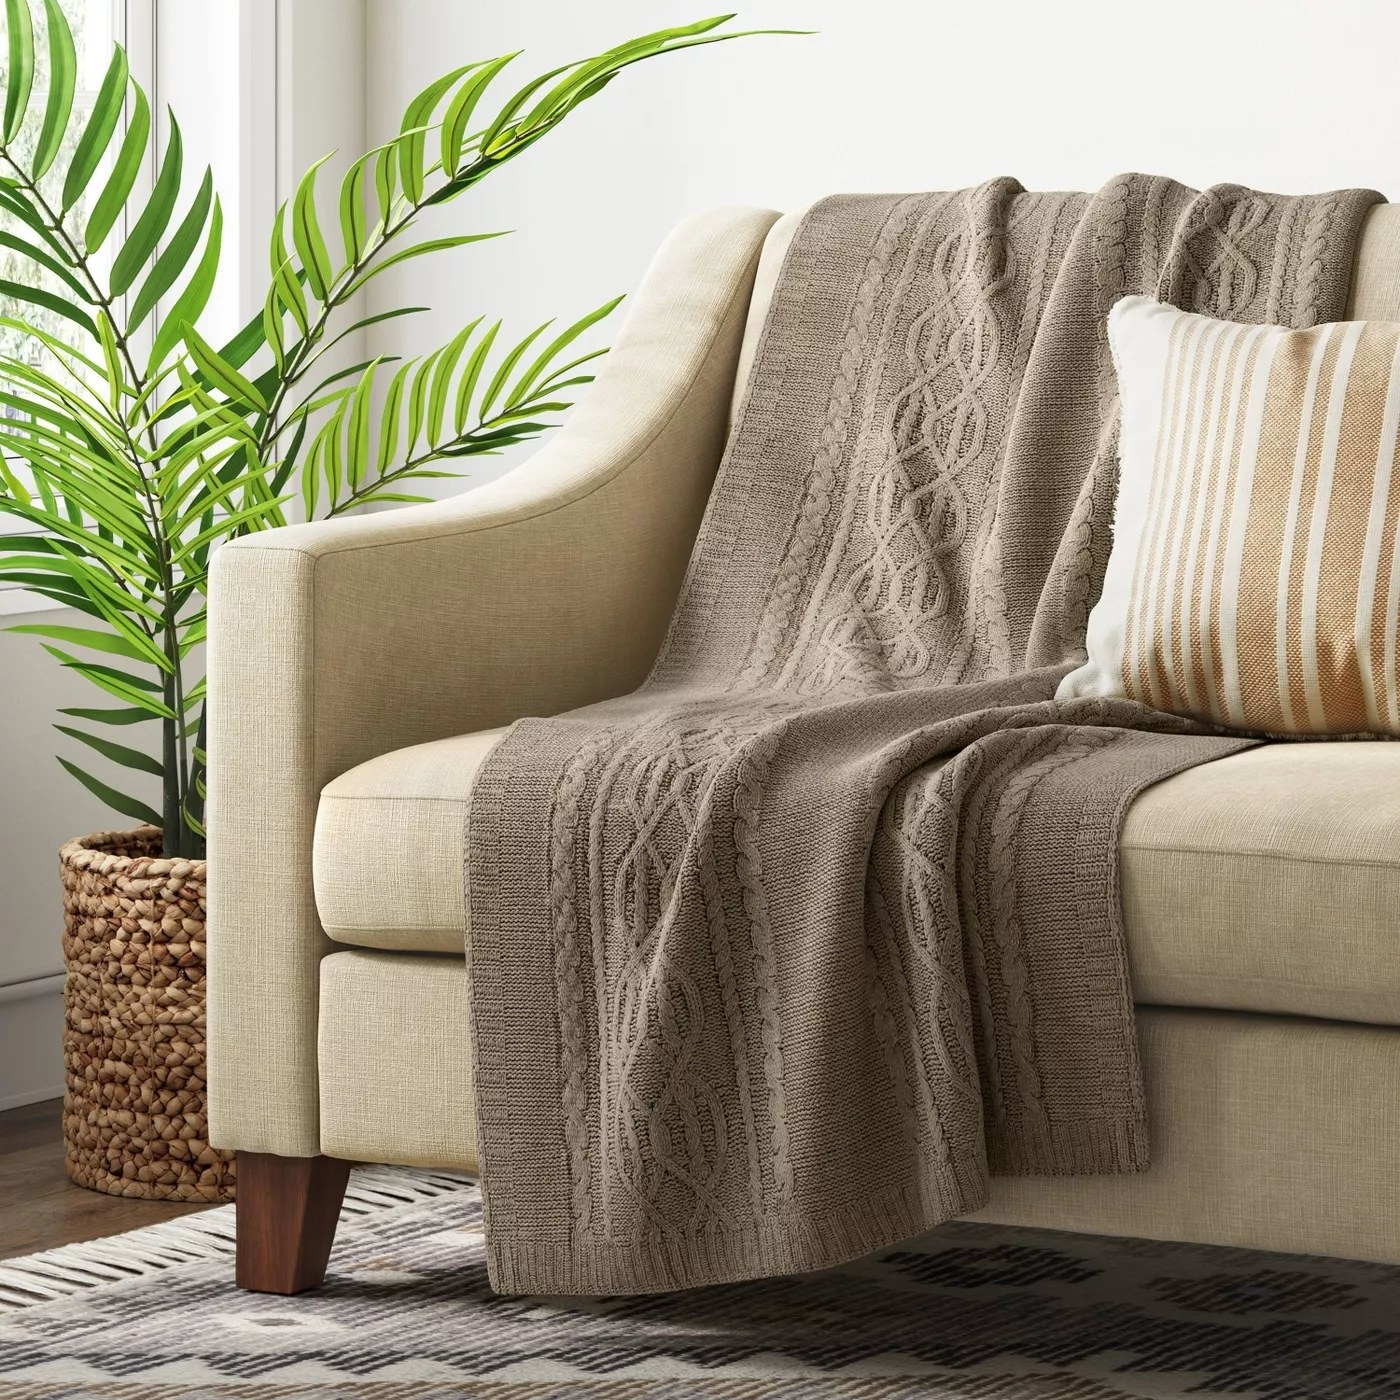 The taupe cable knit throw draped over a couch